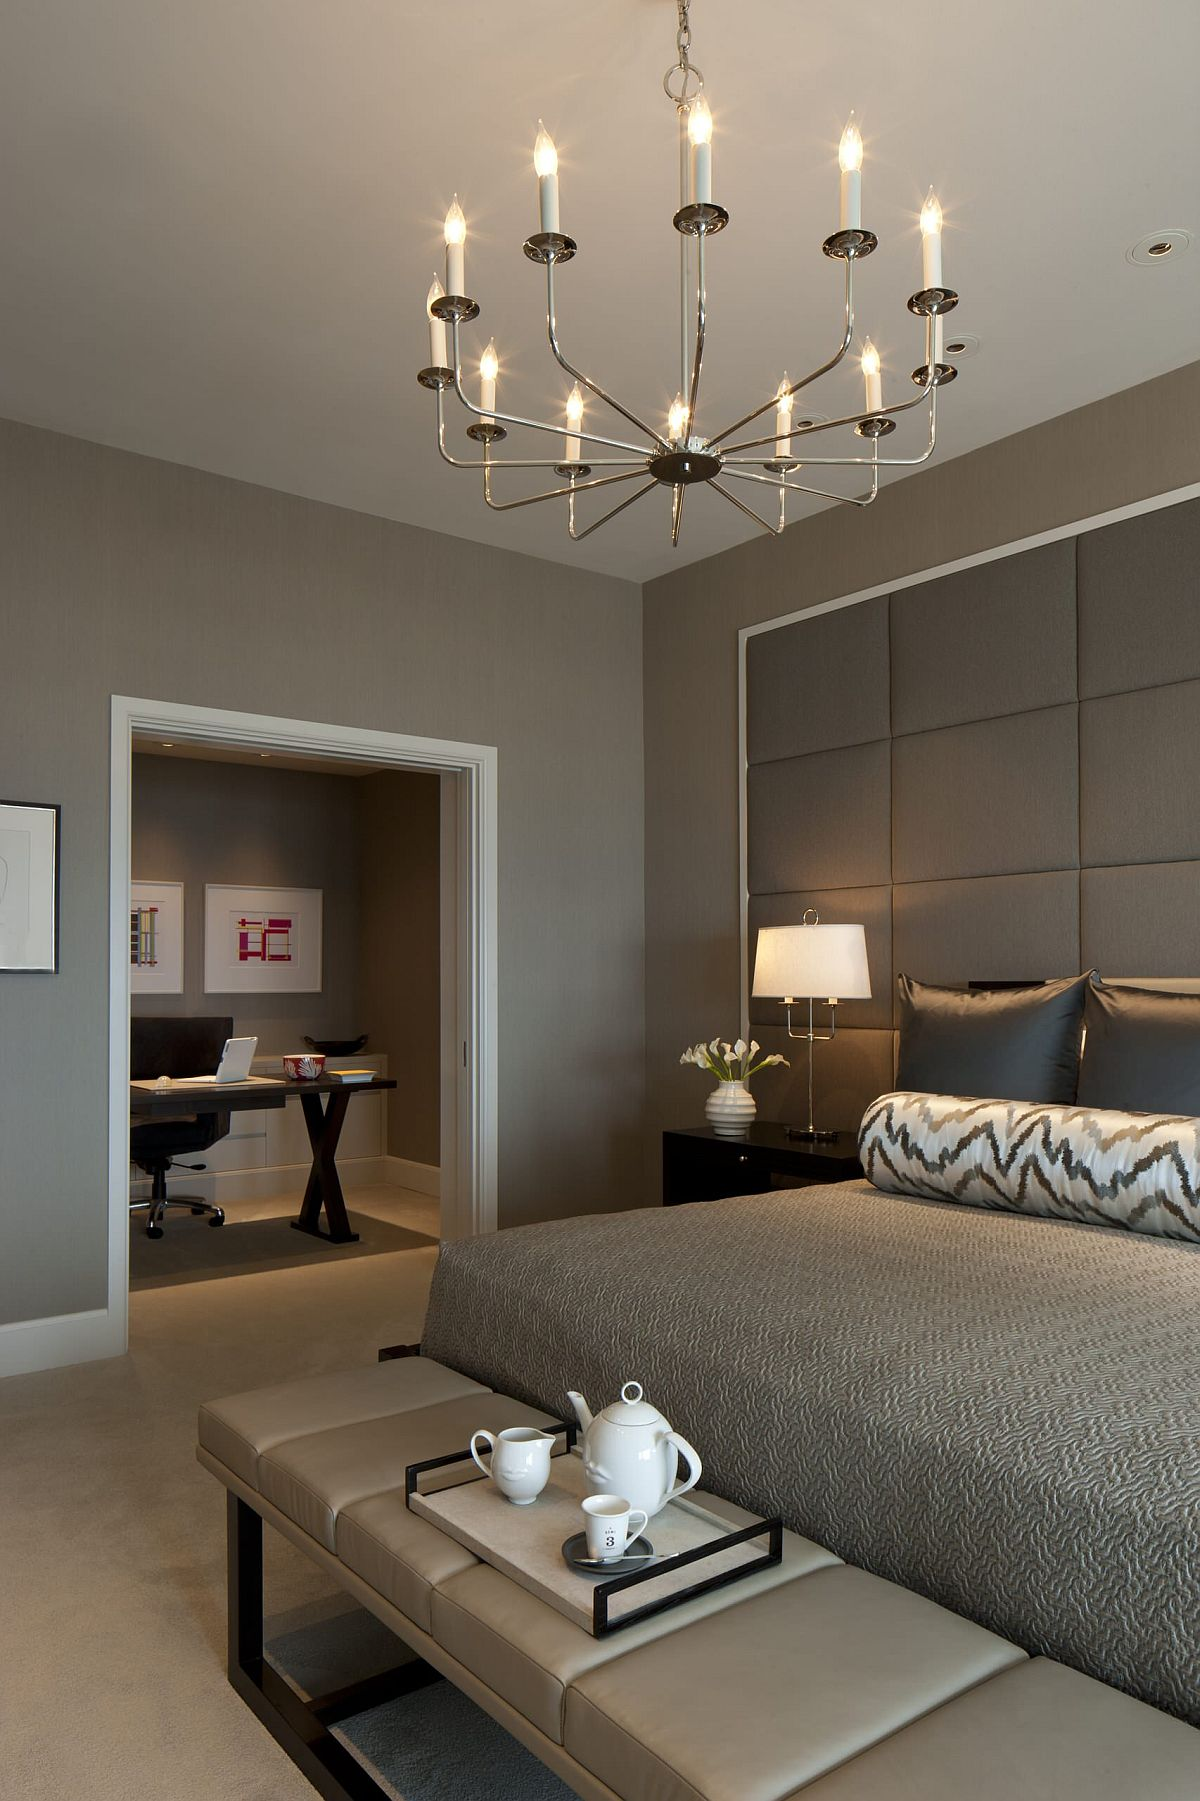 Tufted wall-covering in gray perfectly captures tone-on-tone approach to decorating with gray in this bedroom